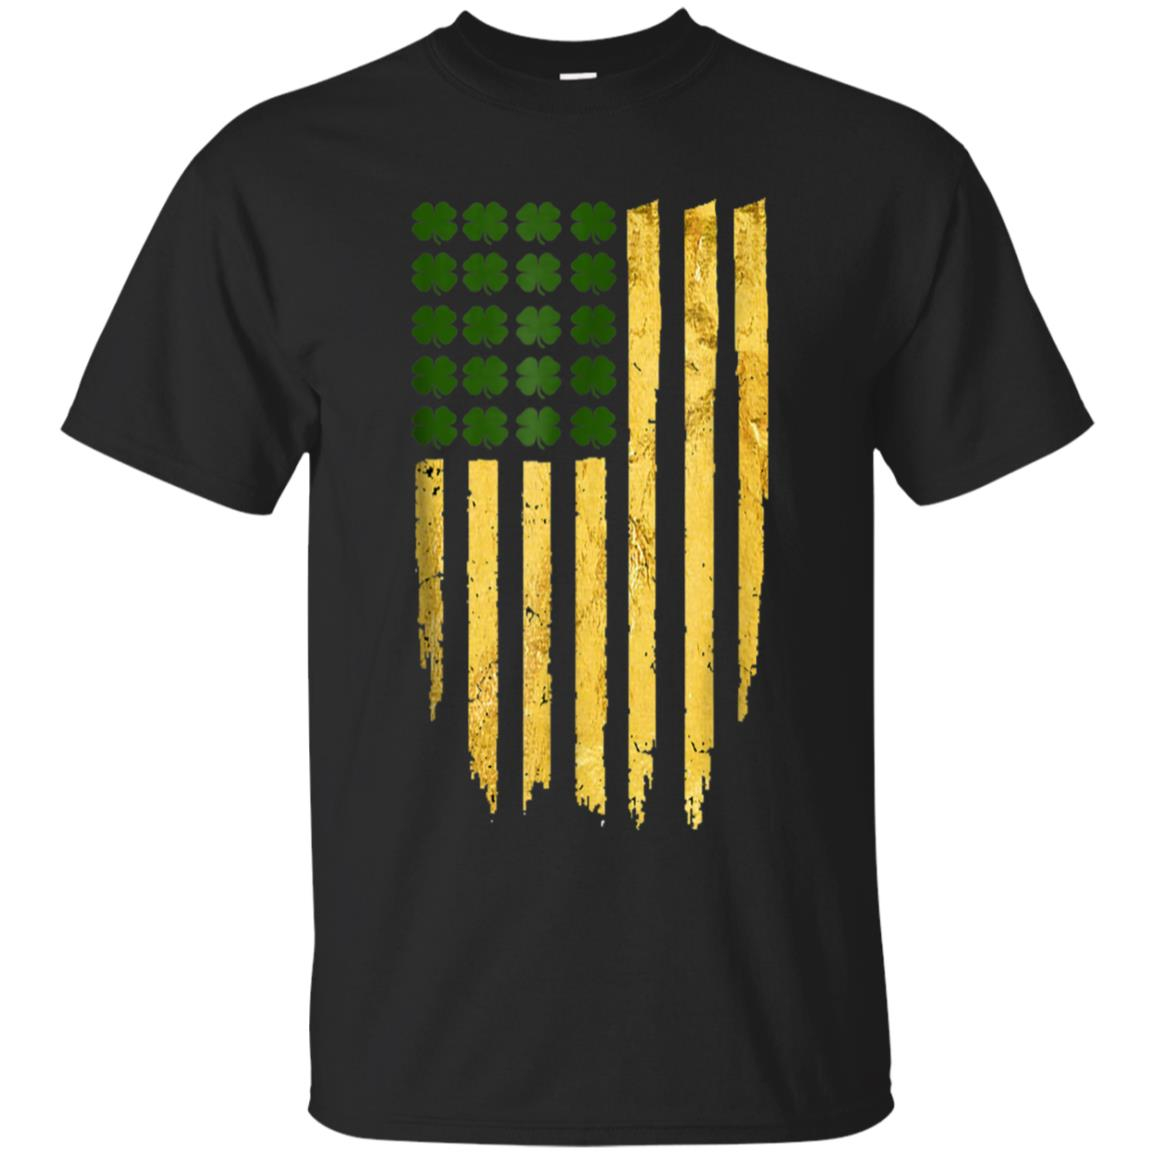 St patricks day irish american flag shirt - gold tshirt 99promocode